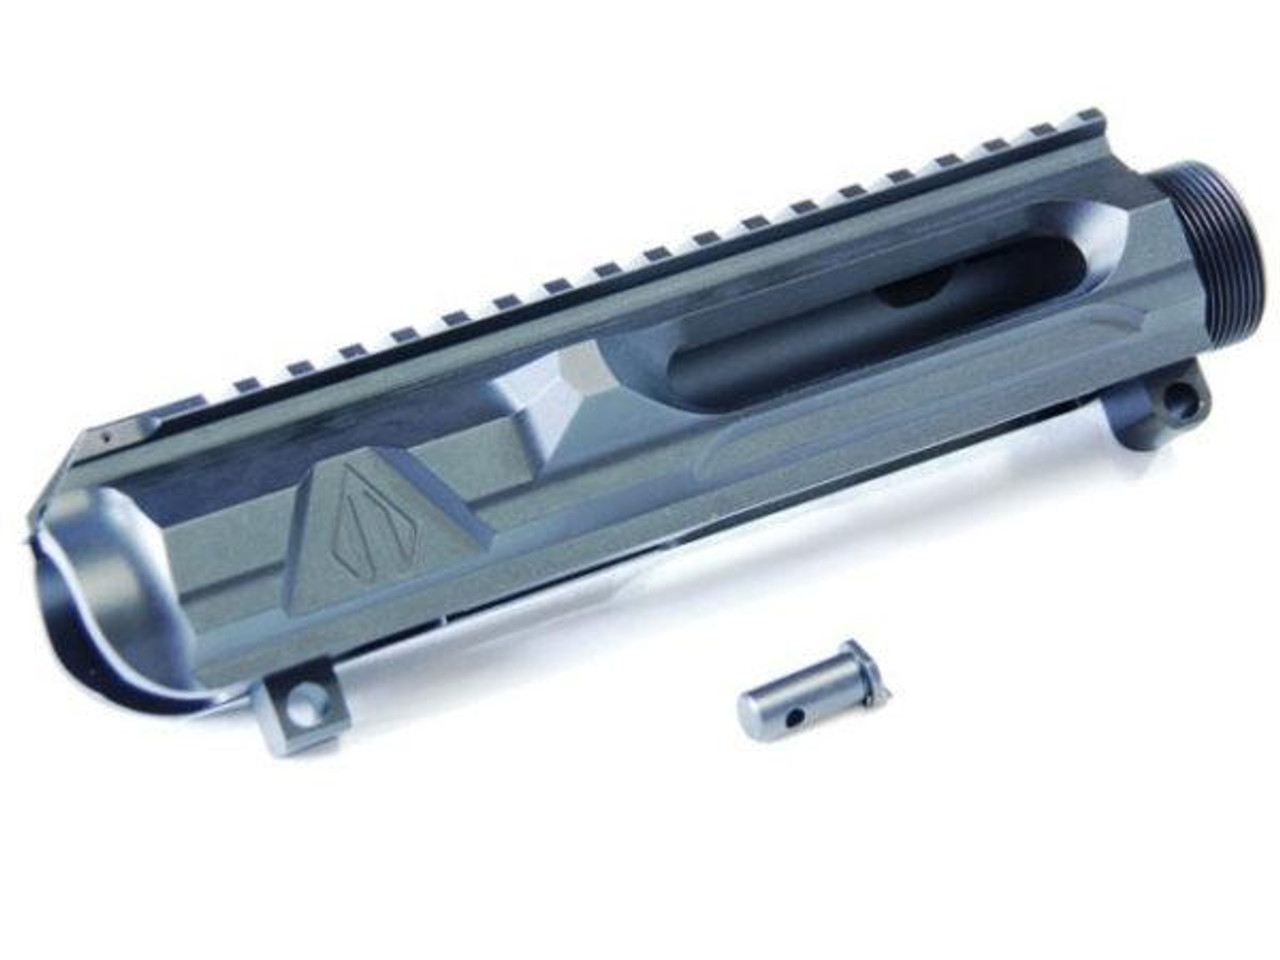 Gibbz Arms G10 Side Charging Upper Receiver for AR10 – Right Handed/Gen 3